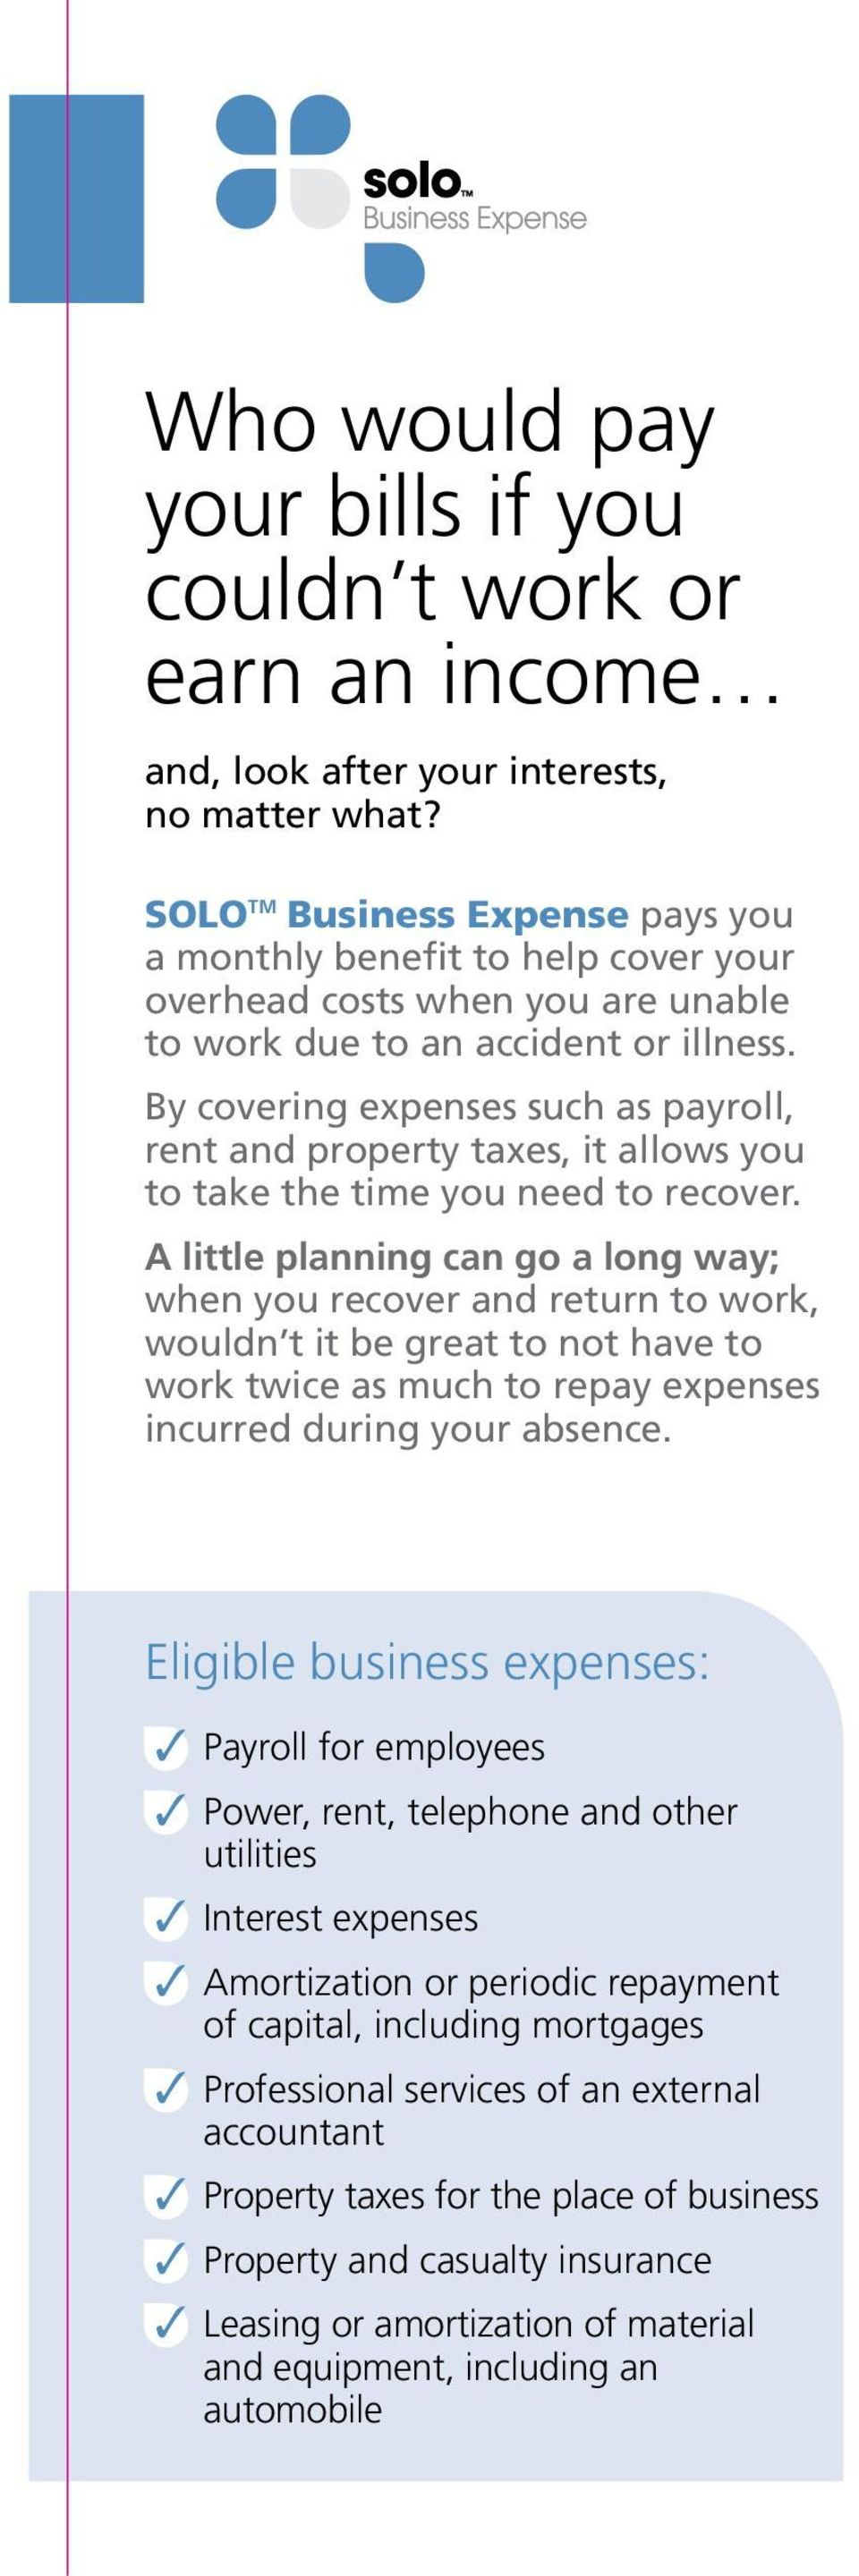 By covering expenses such as payroll, rent and property taxes, it allows you to take the time you need to recover.